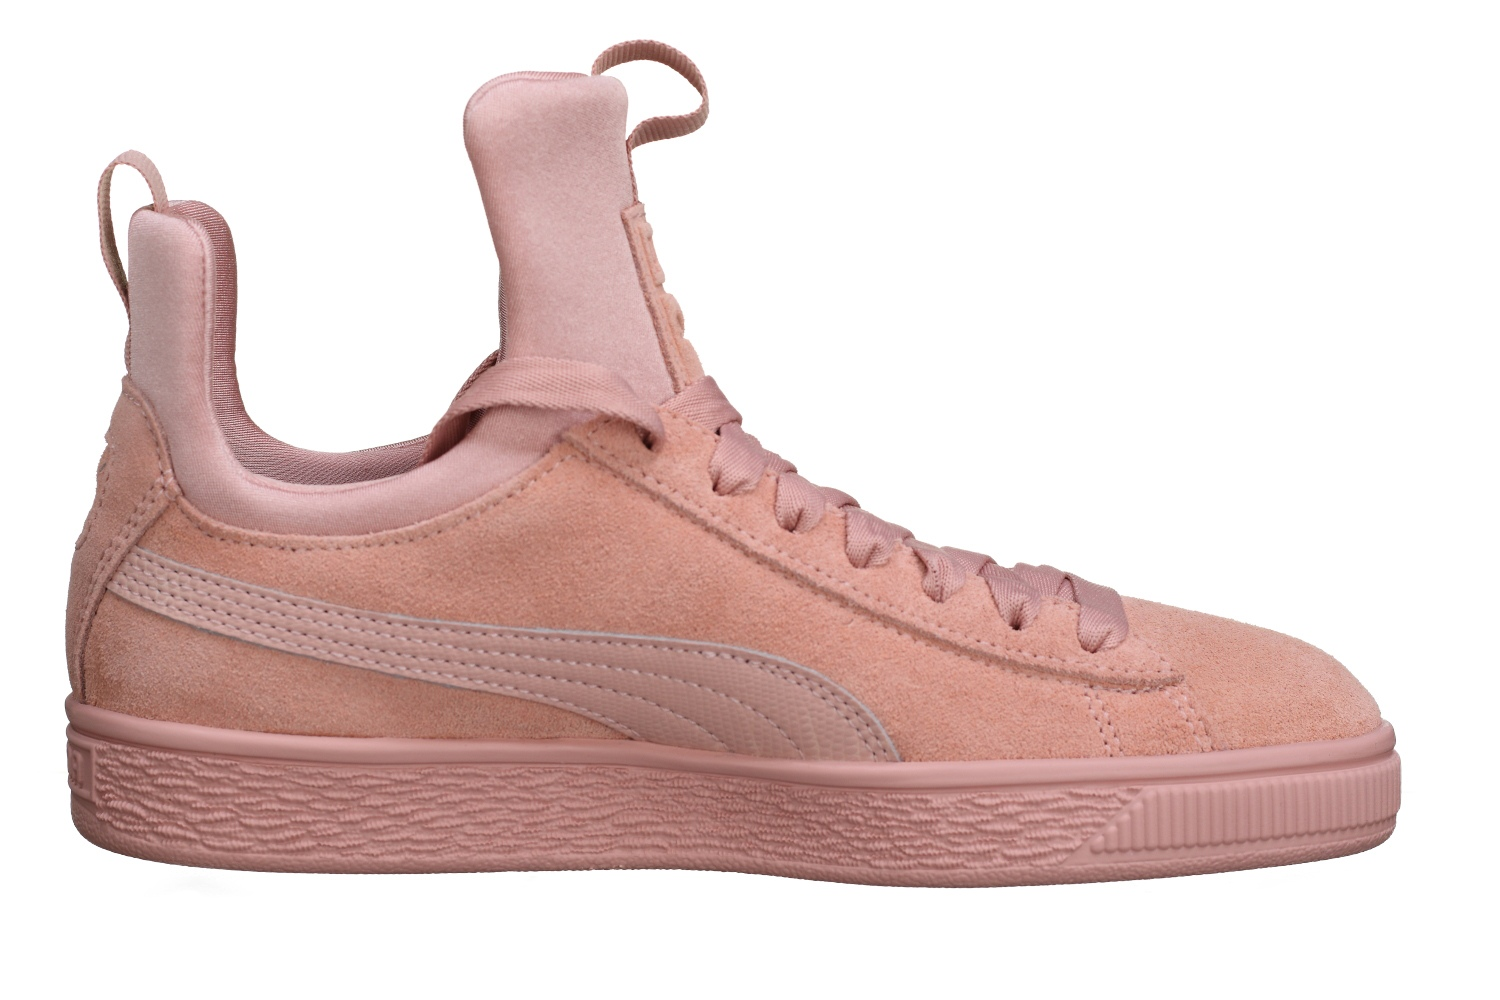 http://www.leadermode.com/141765/puma-suede-fierce-wn-s-366010-01-rose.jpg